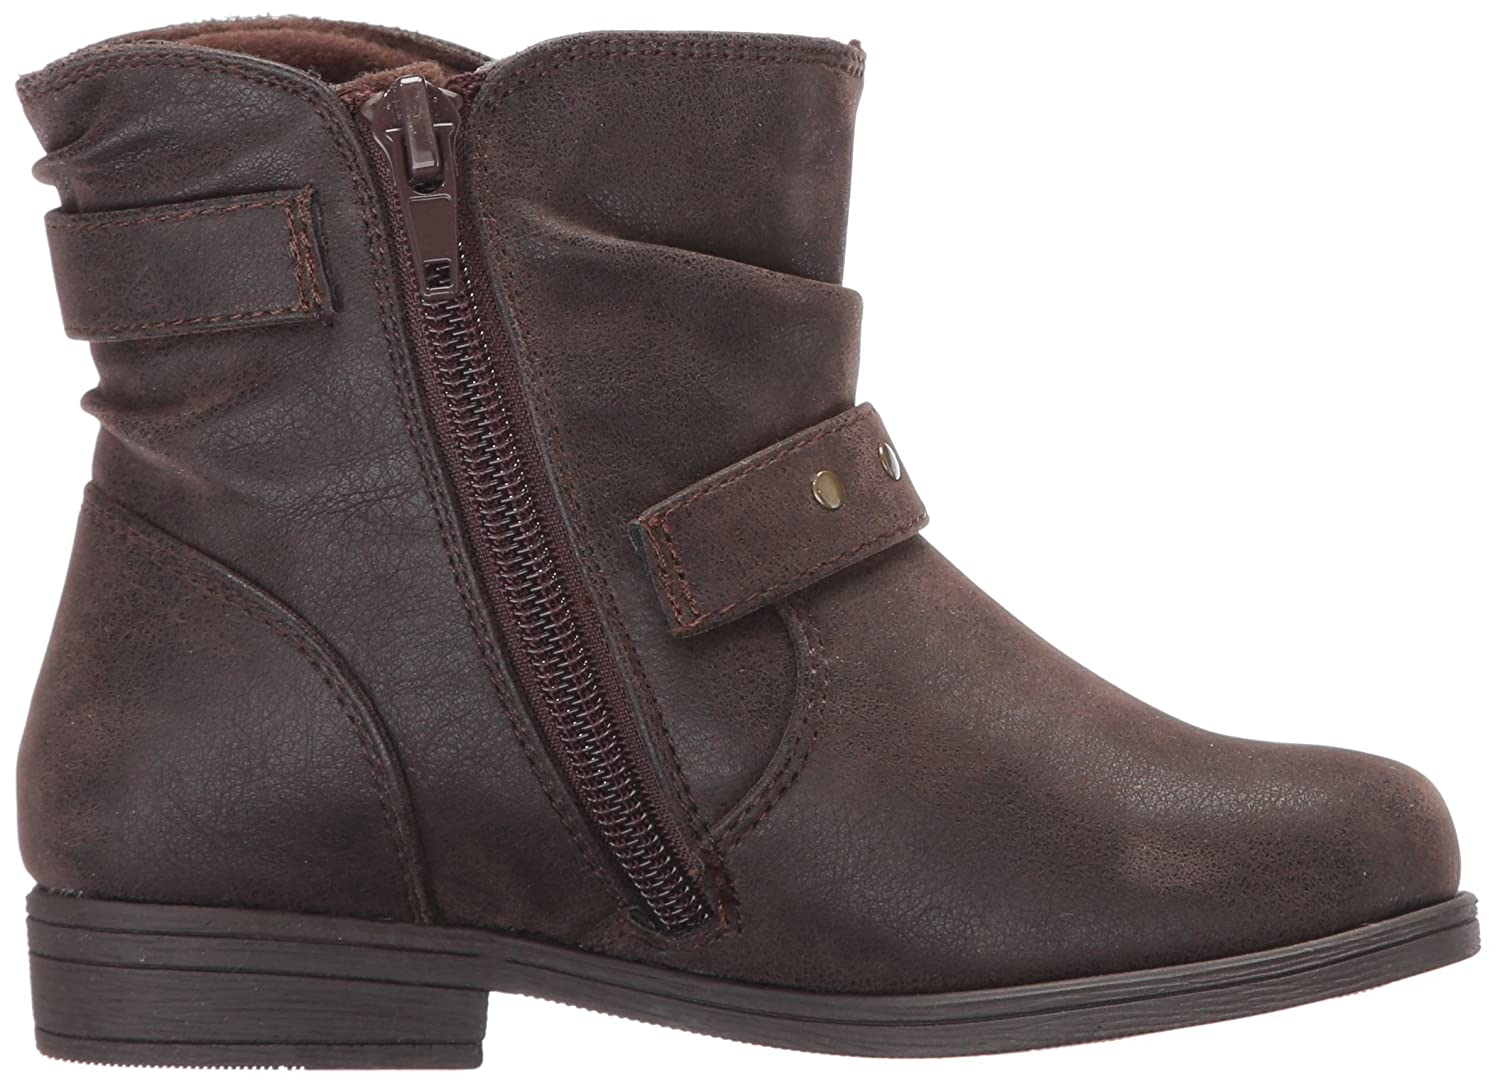 Rachel Shoes Girls Lil Princeton Ankle Boot 7 M US Toddler Brown